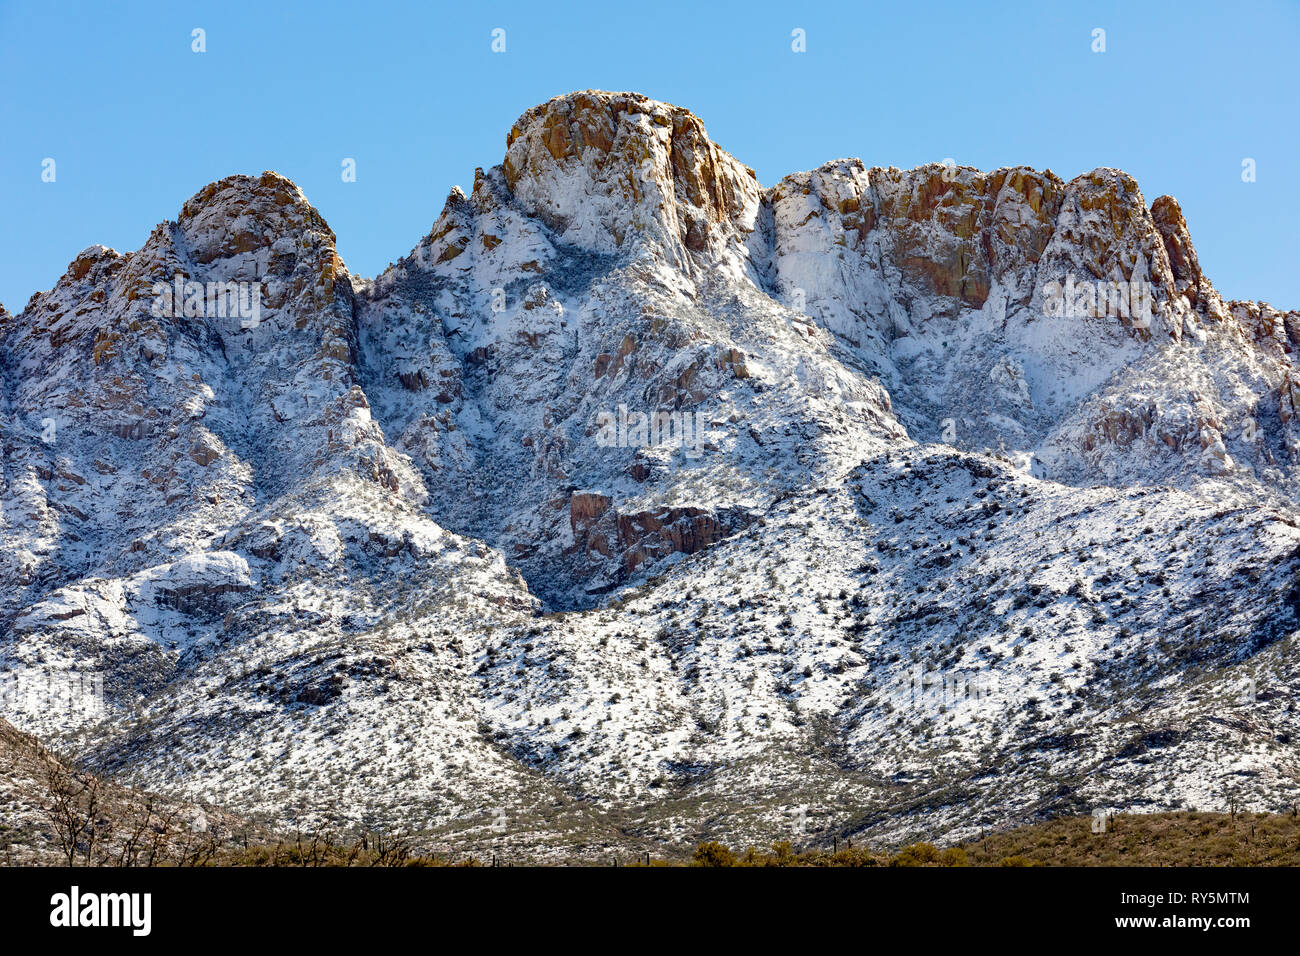 Fresh snowfall Pusch Ridge, Santa Catalina Mountains, Catalina State Park, Tucson, Arizona - Stock Image